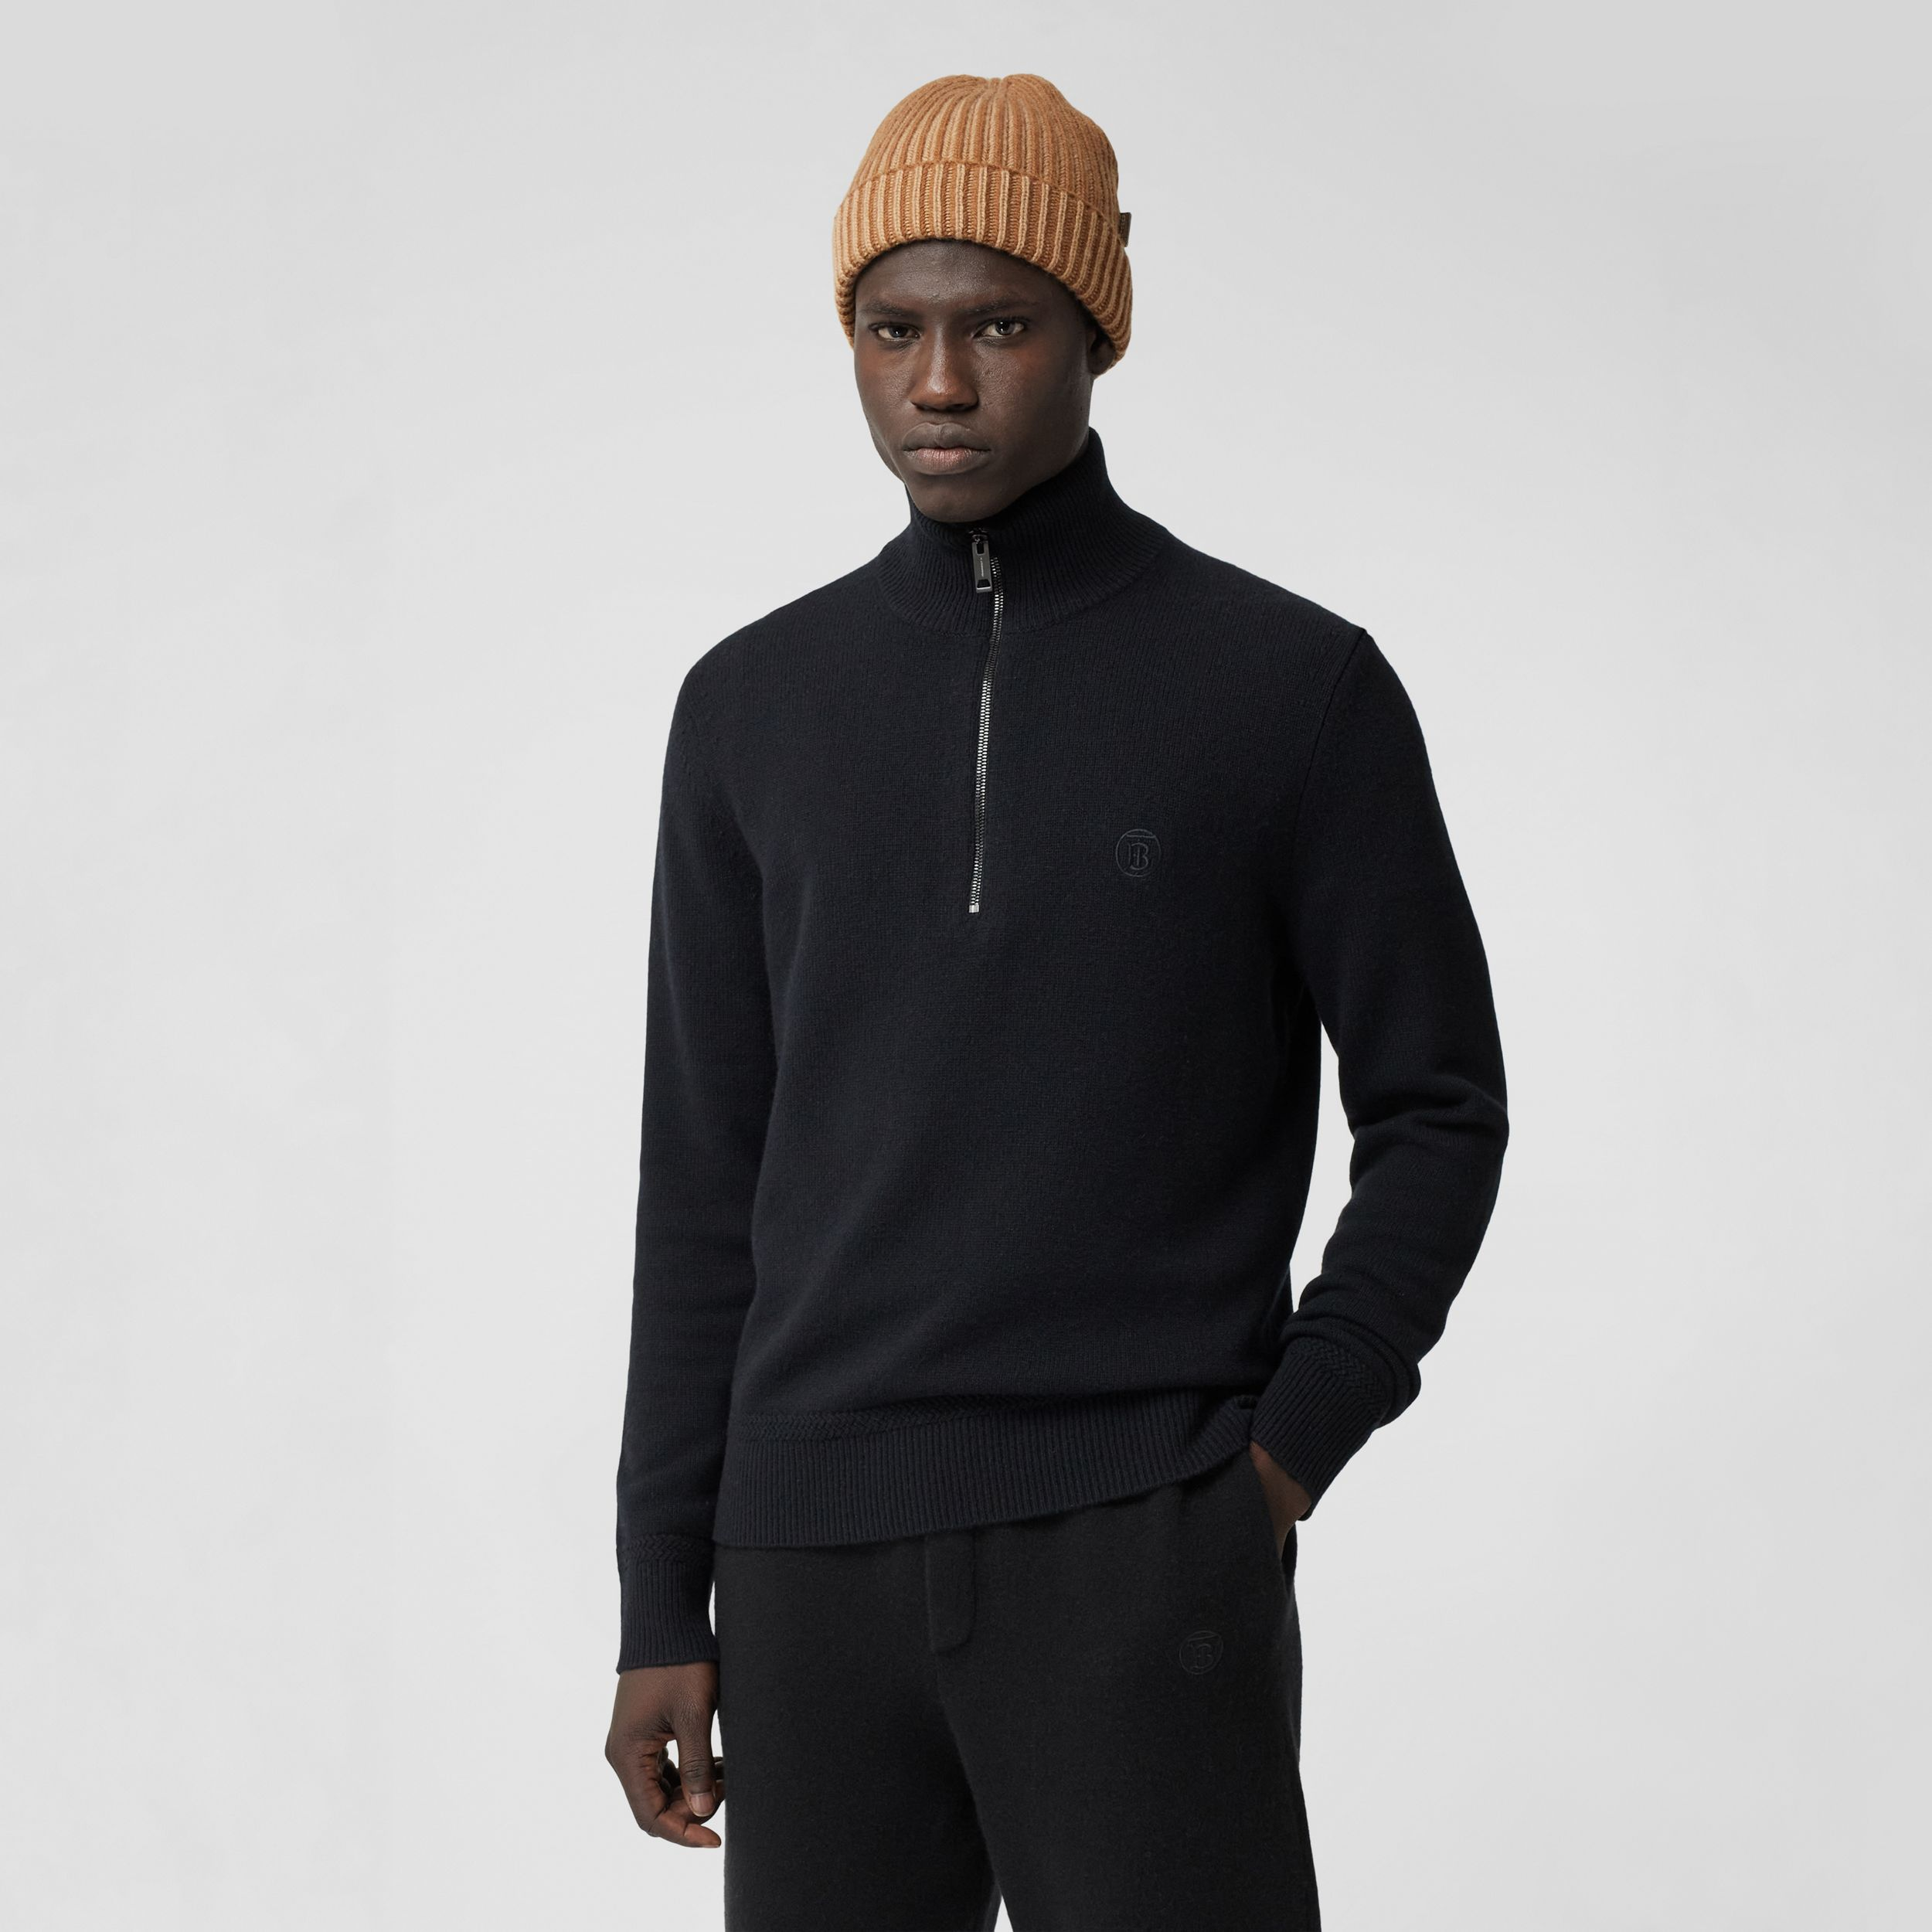 Monogram Motif Cashmere Funnel Neck Sweater in Black - Men | Burberry United Kingdom - 1